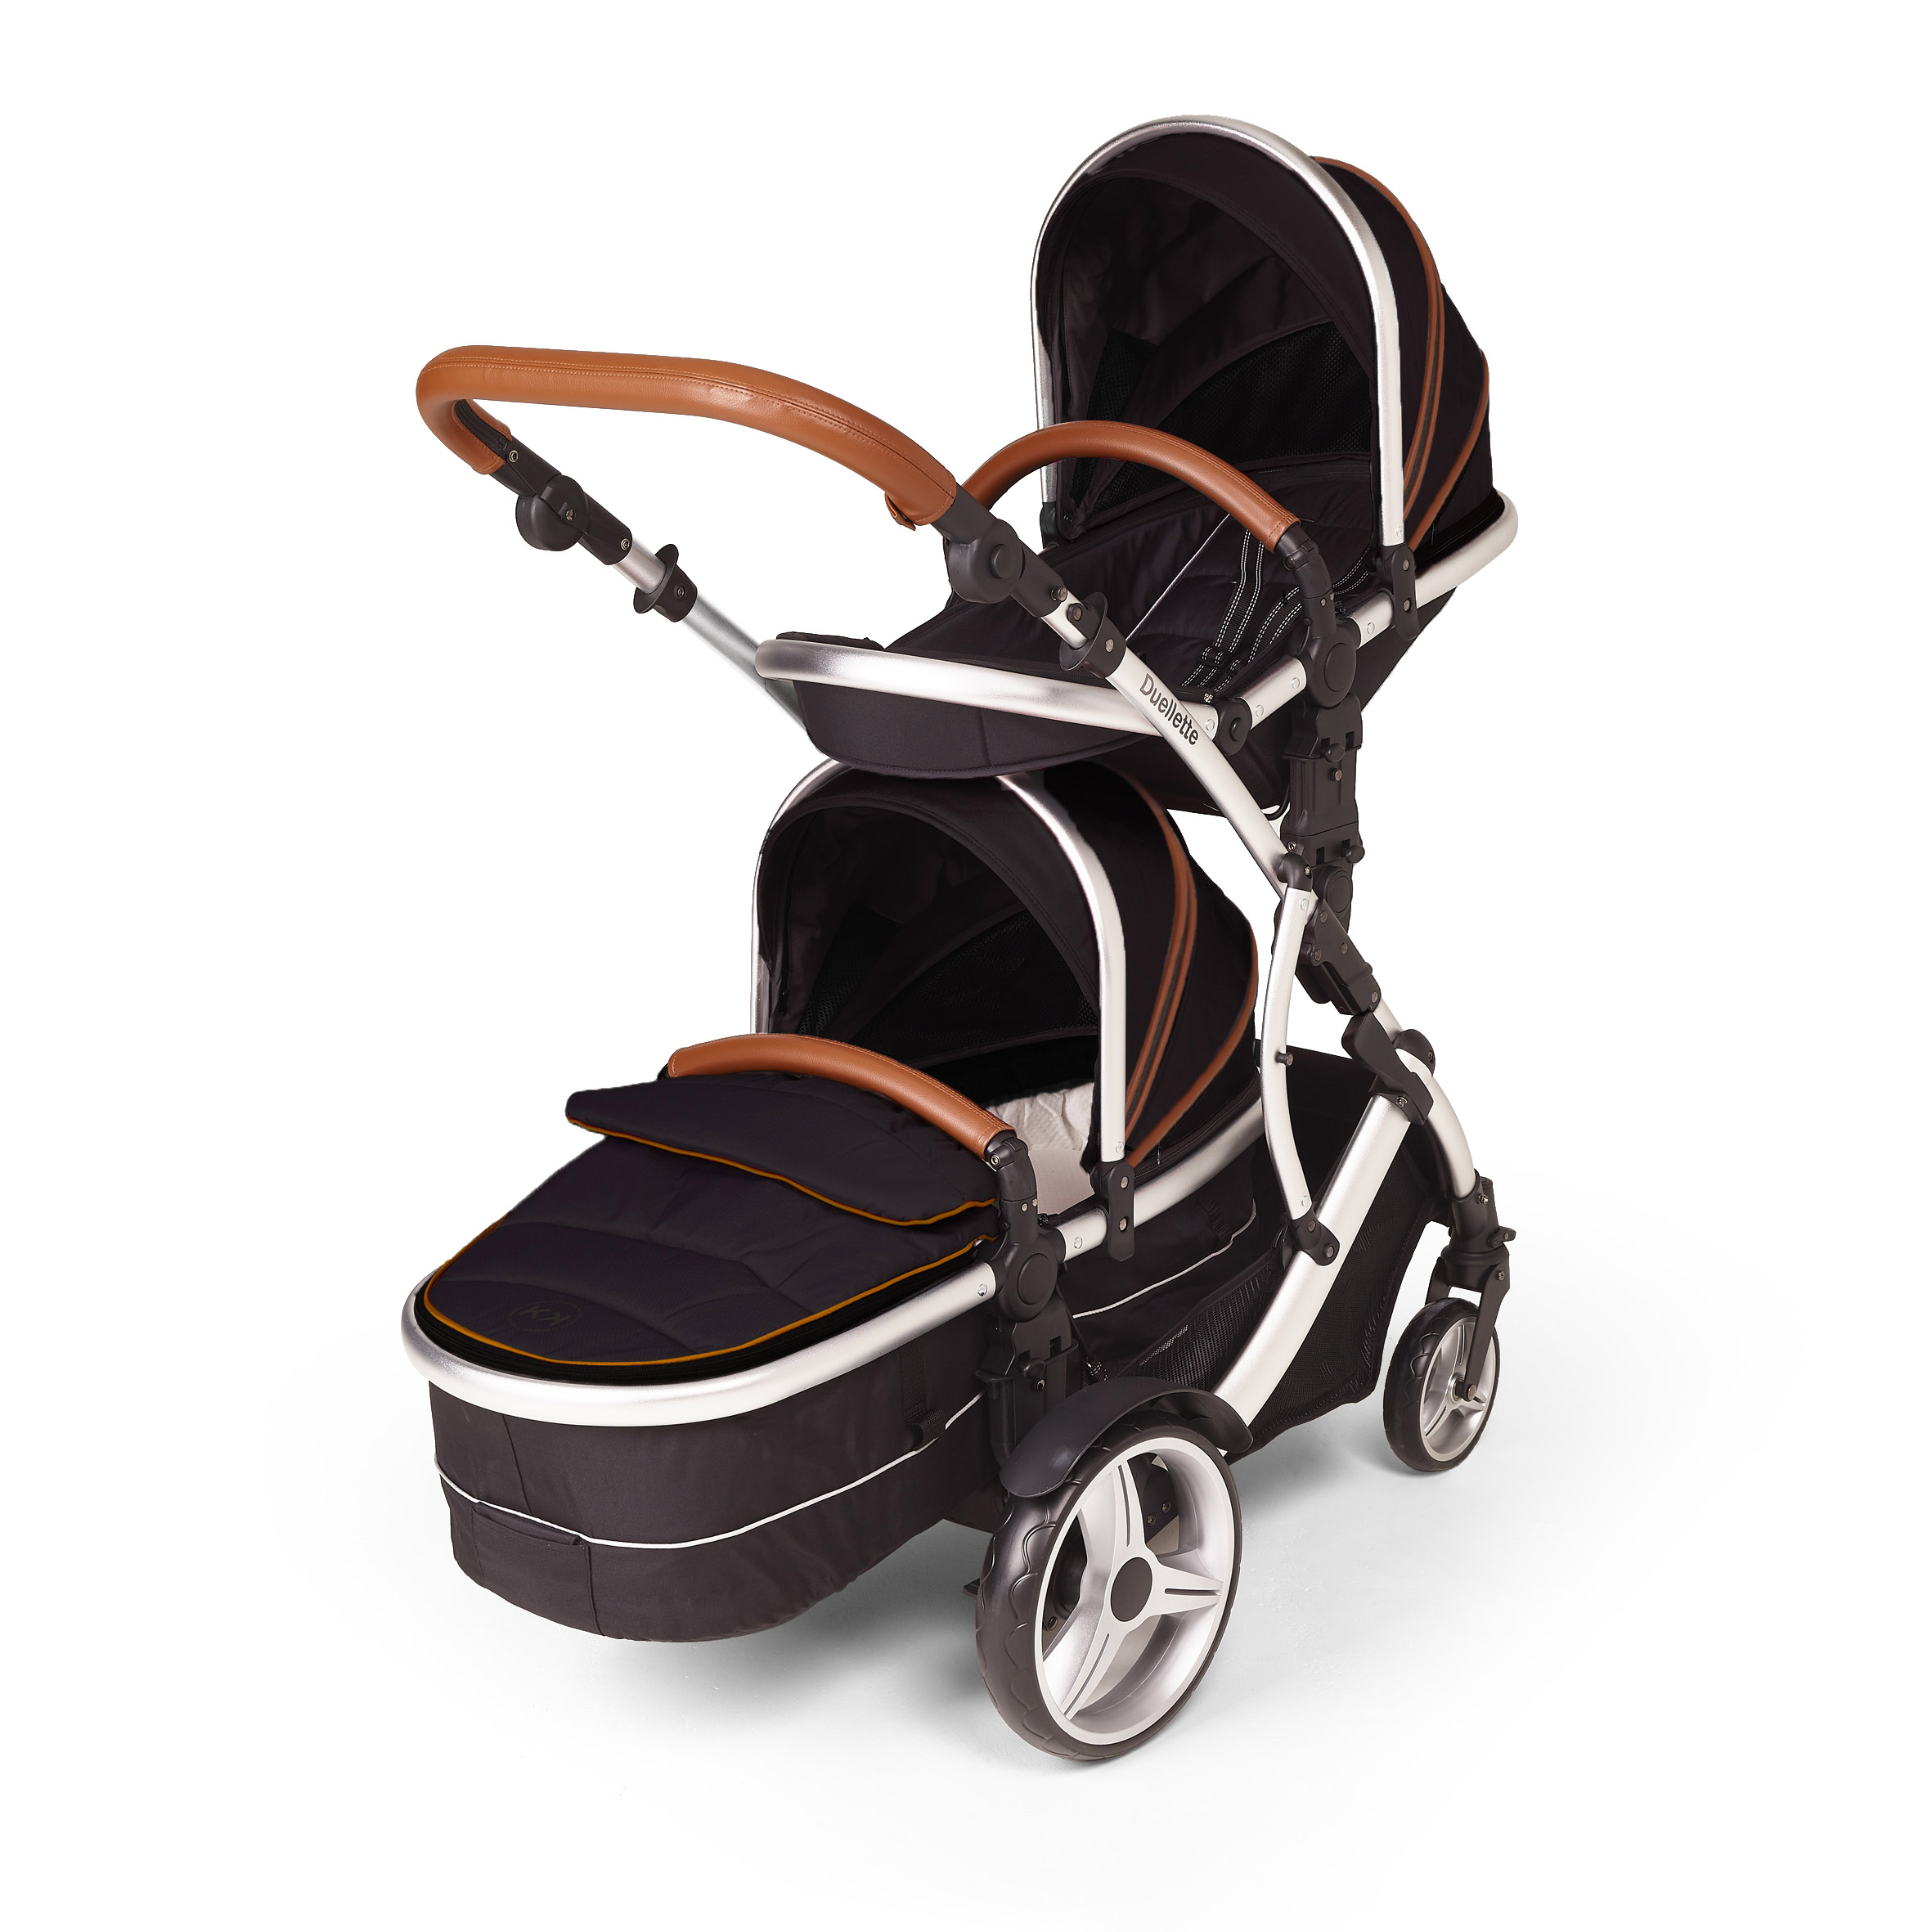 Combi Double Stroller Side By Side Double Pushchairs Or Tandem Pushchair What Are The Key